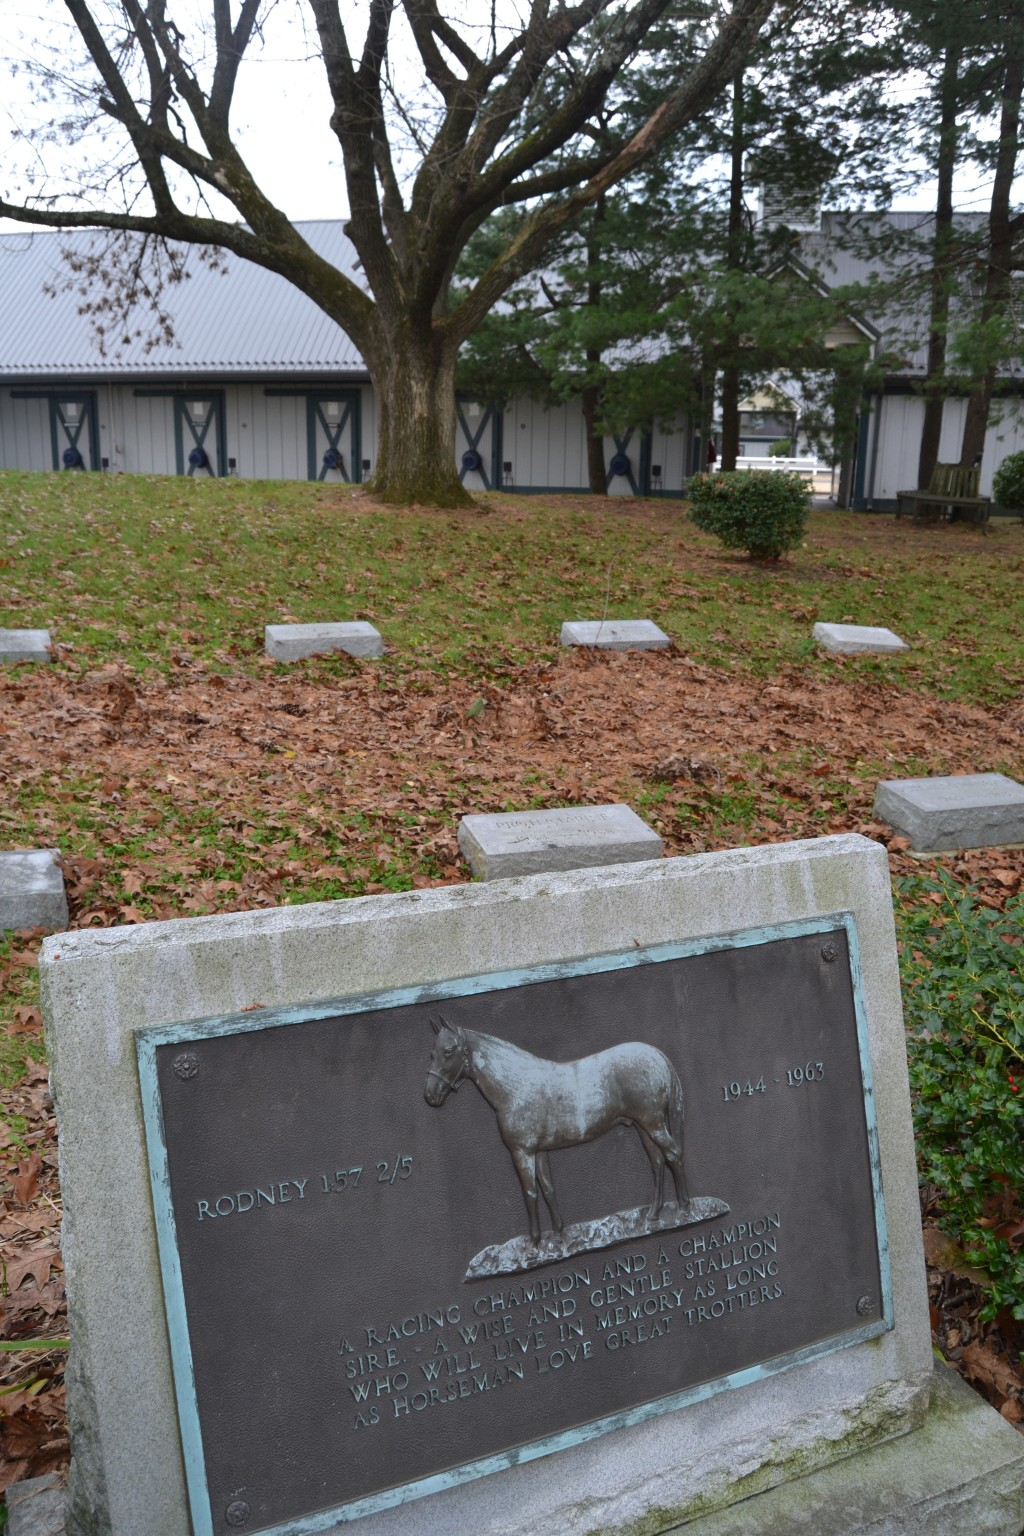 In this Nov. 18, 2017 photo, grave markers for champion horses are shown at a cemetery on the grounds of the Kentucky Horse Park in Lexington, Ky. (Ch...